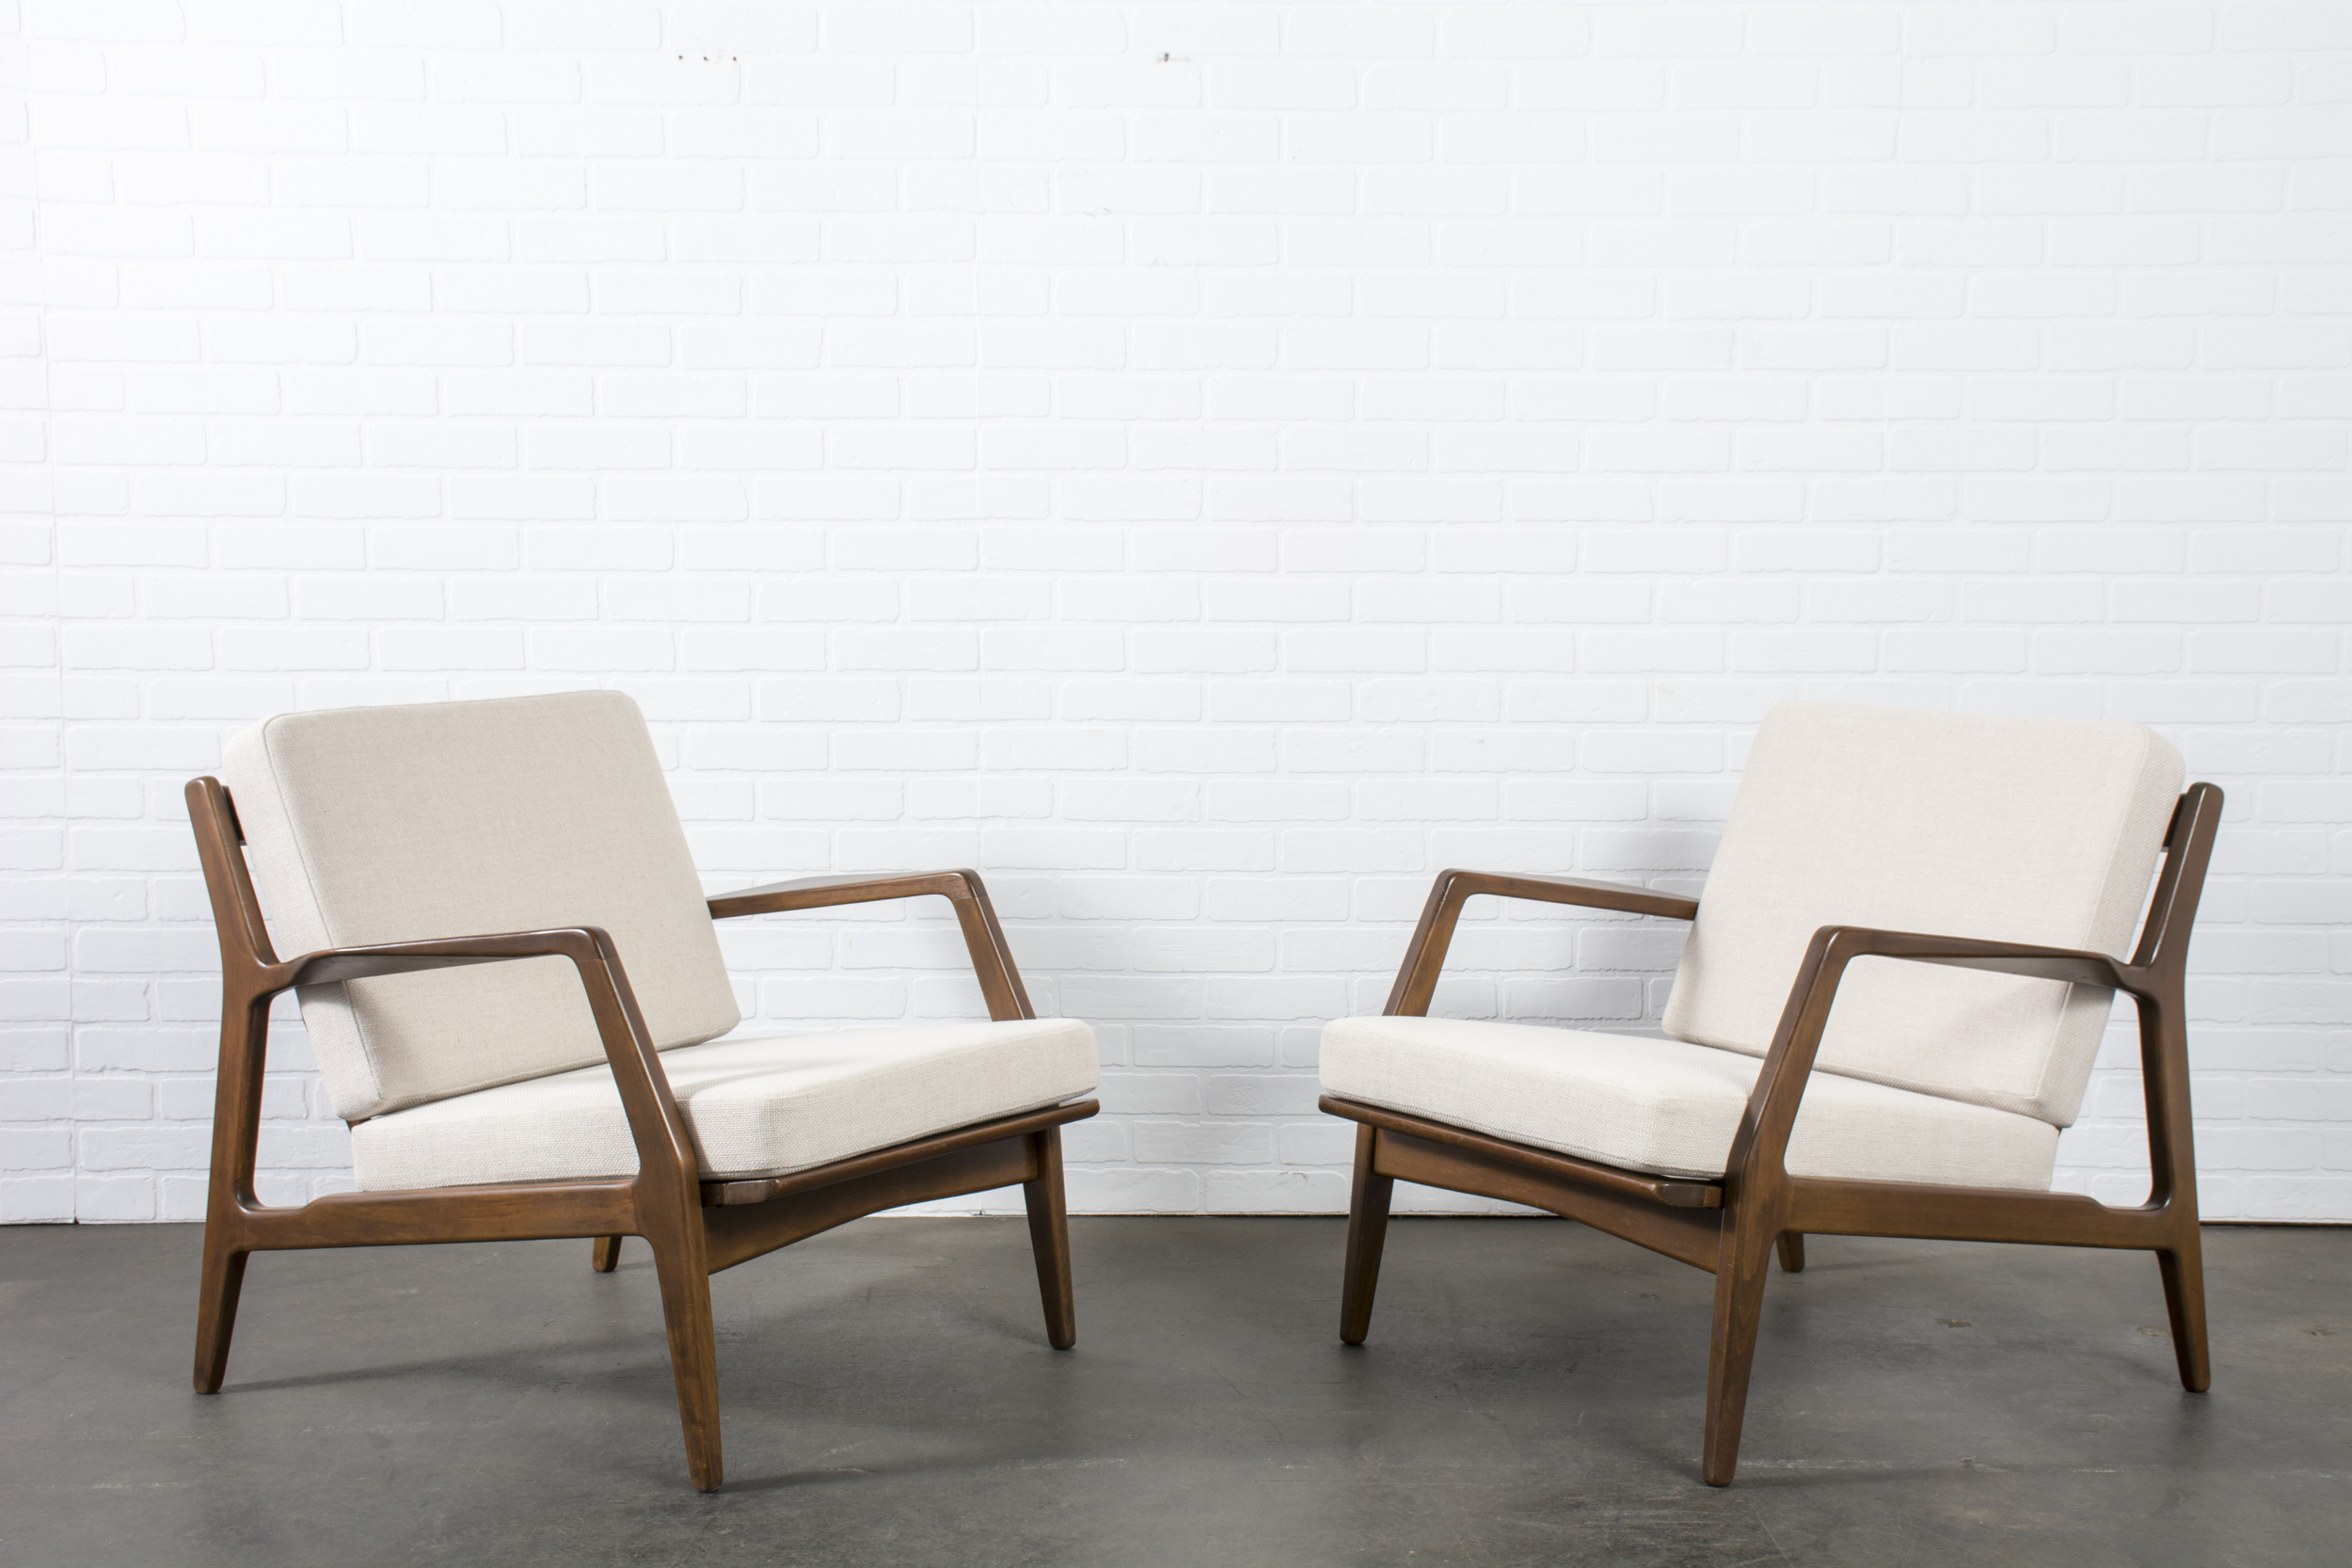 Pair of Danish Modern Lounge Chairs by Ib Kofod Larsen